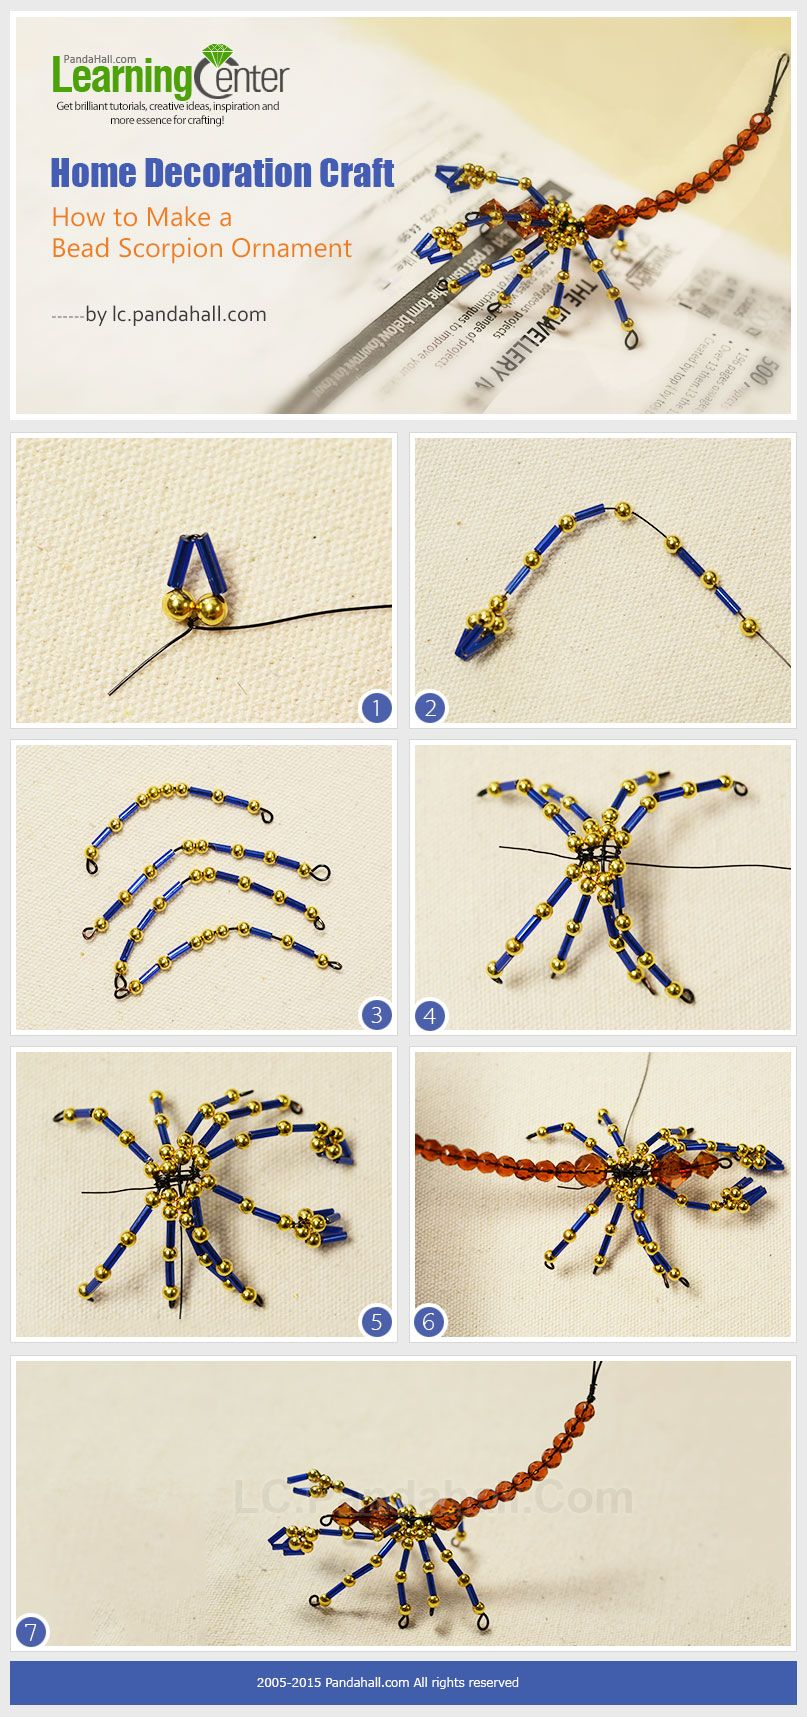 Home Decoration Craft - How to Make a Bead Scorpion Ornament | Beads ...